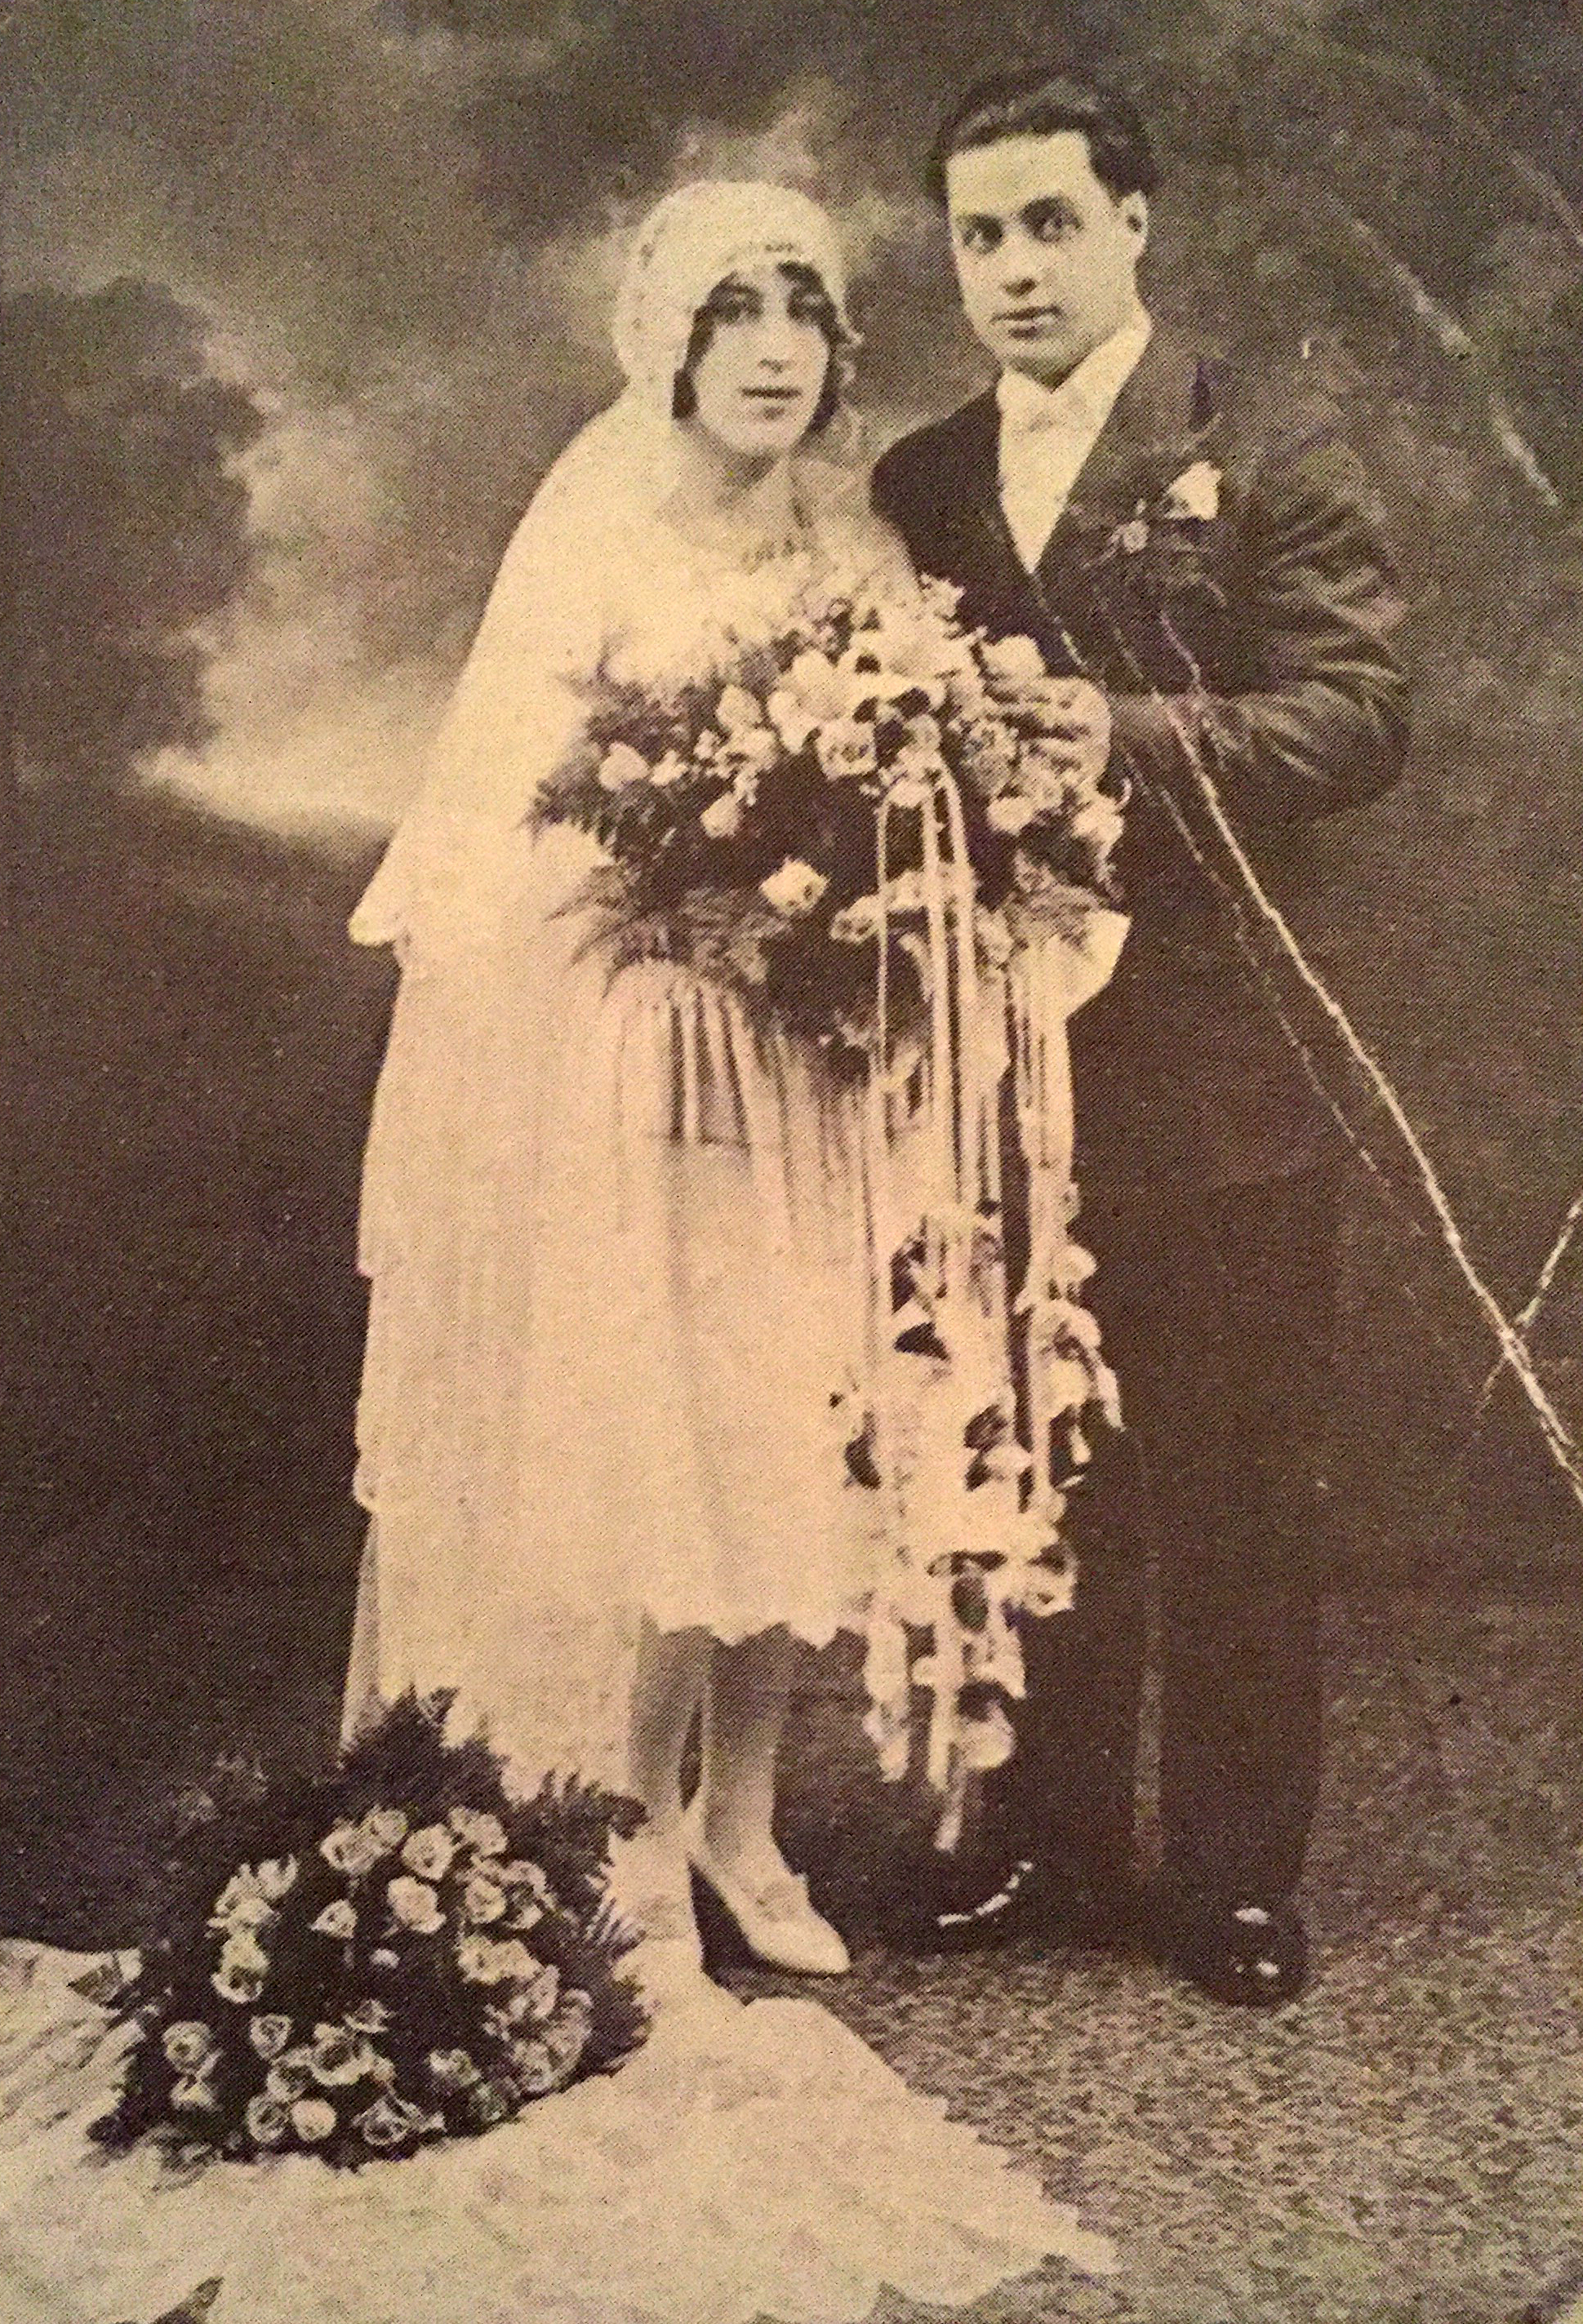 Mr. and Mrs. Joseph Carano, the first couple married in Sacred Heart Church, April 6, 1929